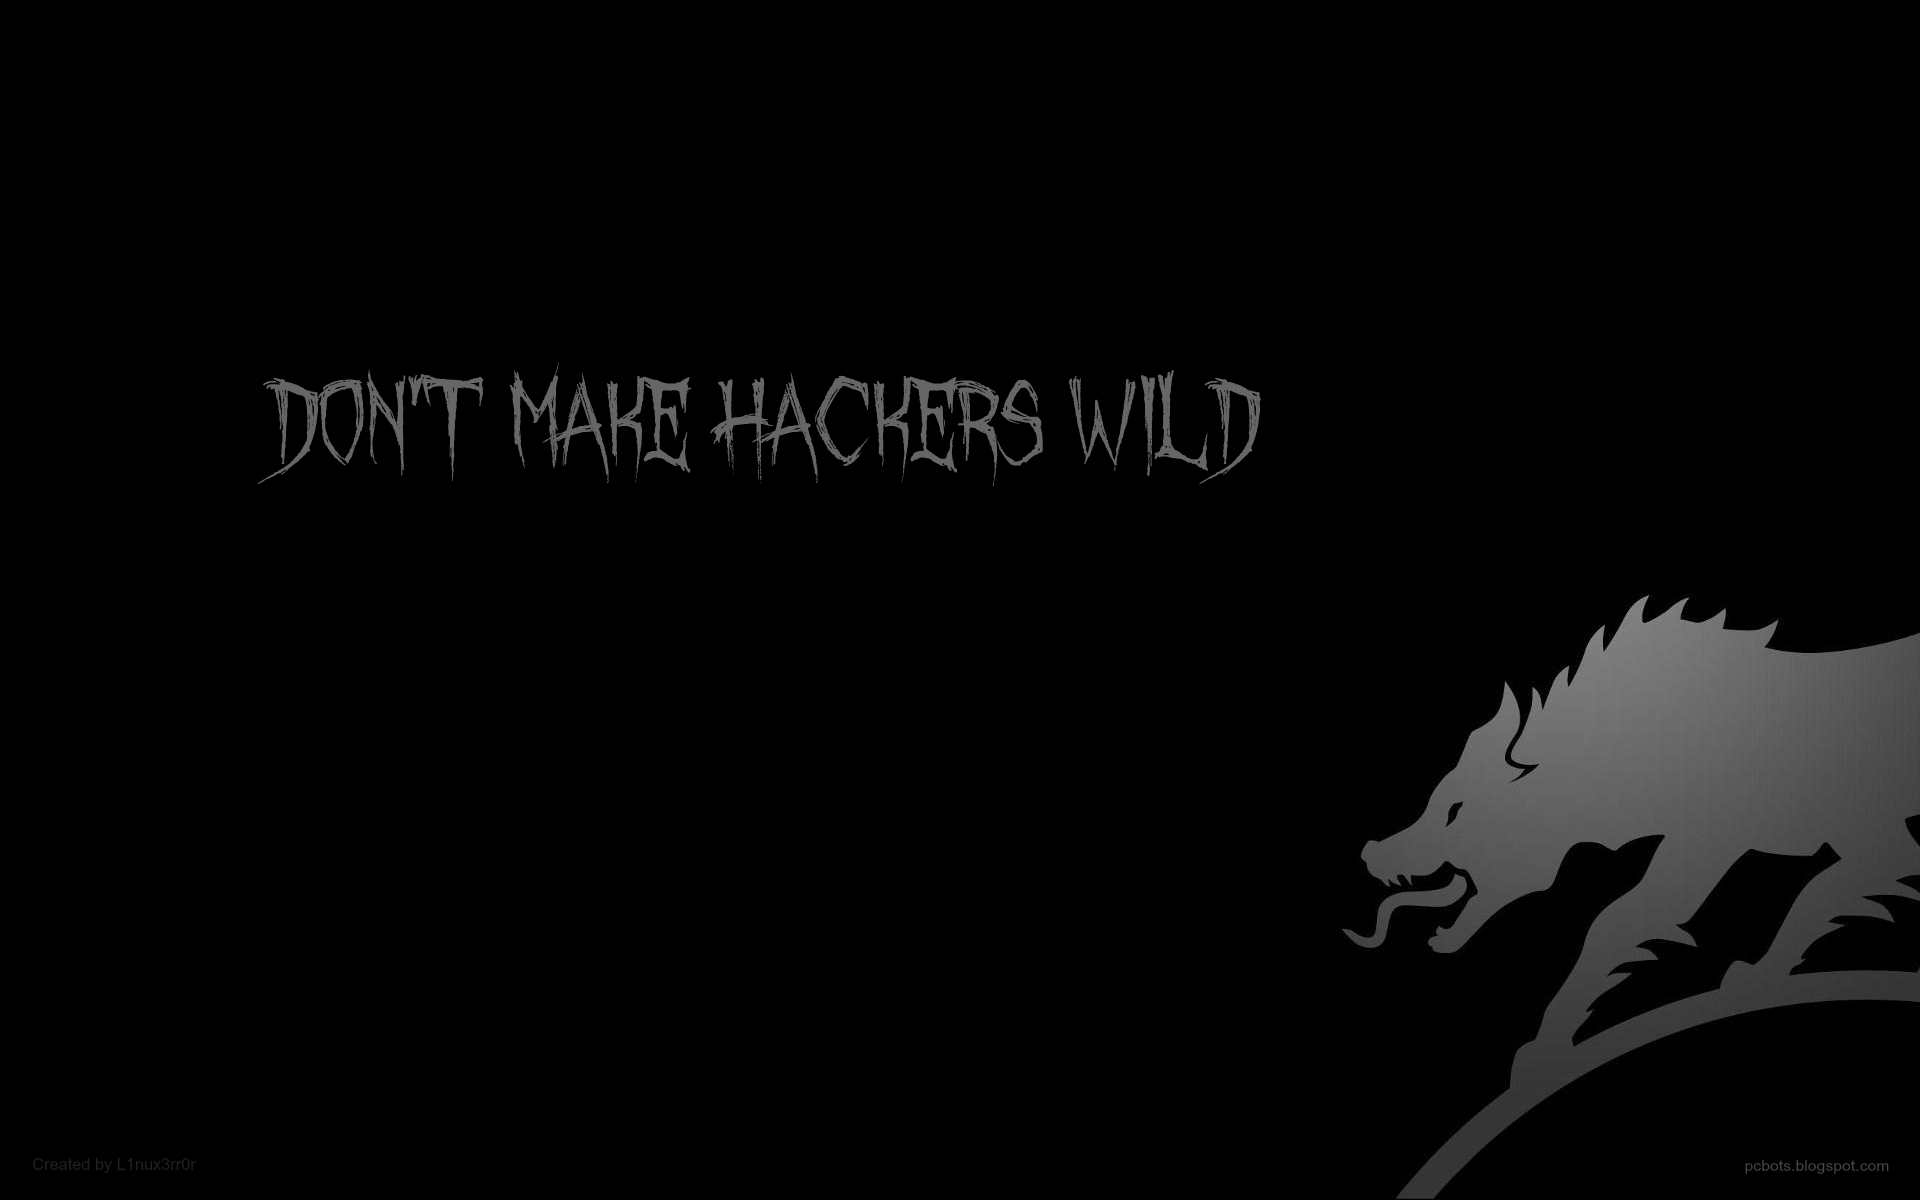 Programmer Quotes Wallpaper Hd Don T Make Hacker Wild Full Hd Wallpaper And Background